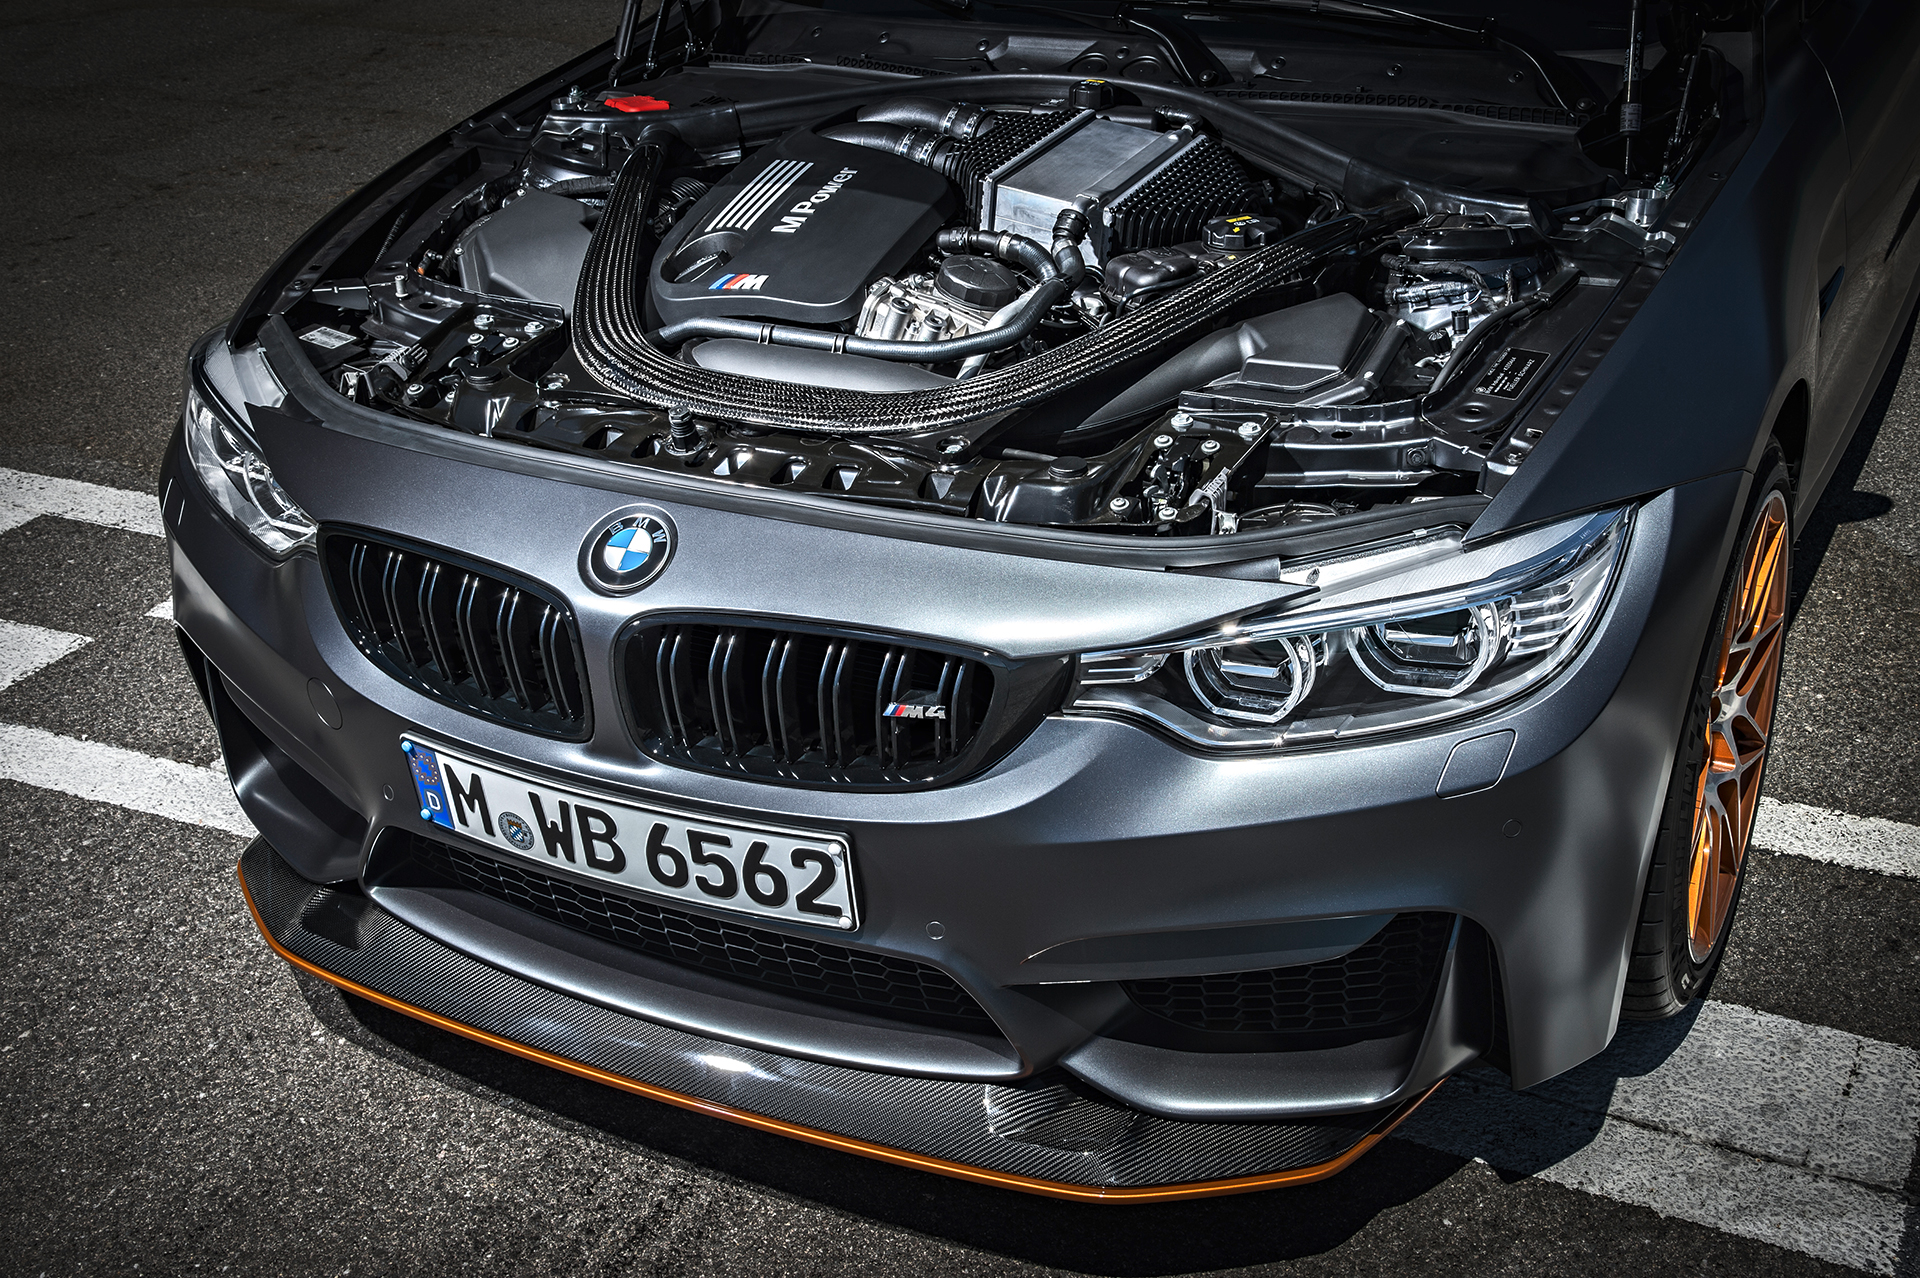 BMW M4 GTS - capot moteur / under the hood